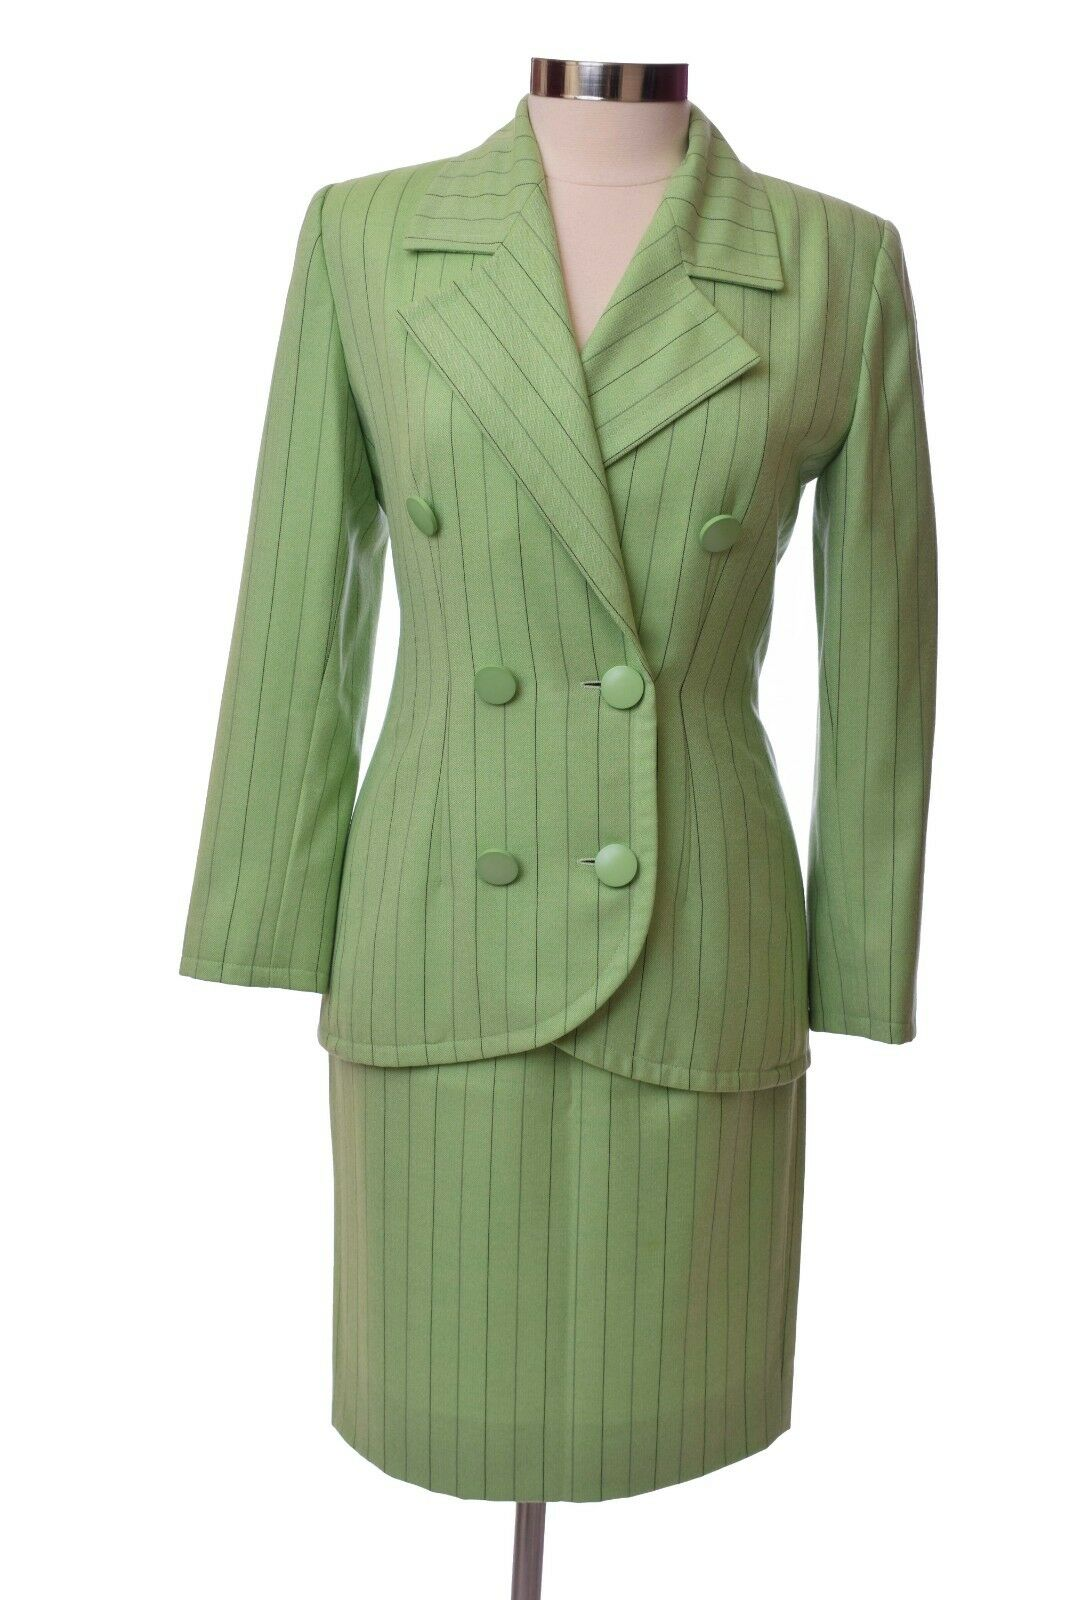 Vintage Green  Couture Givenchy Skirt Suit  Set Size Small